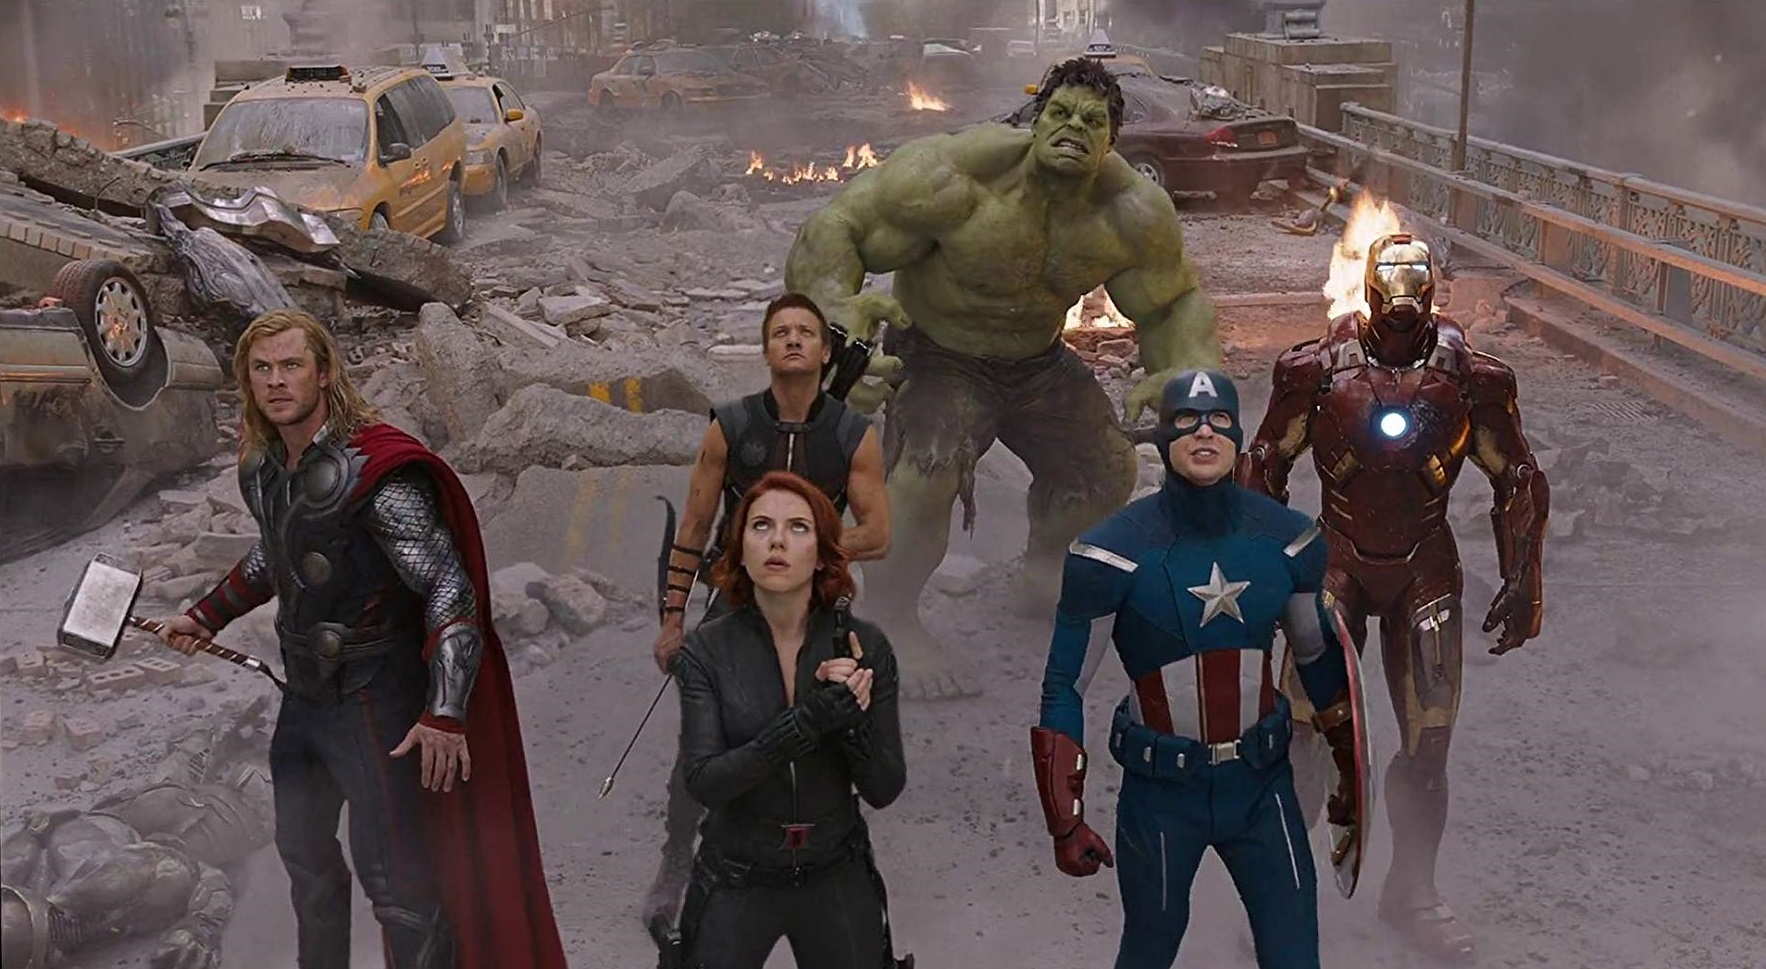 Chris Hemsworth as Thor, Scarlett Johansson as Black Widow, Jeremy Renner as Hawkeye, Mark Ruffalo as The Hulk, Chris Evans as Captain America and Robert Downey Jr as Iron Man in The Avengers (2012)